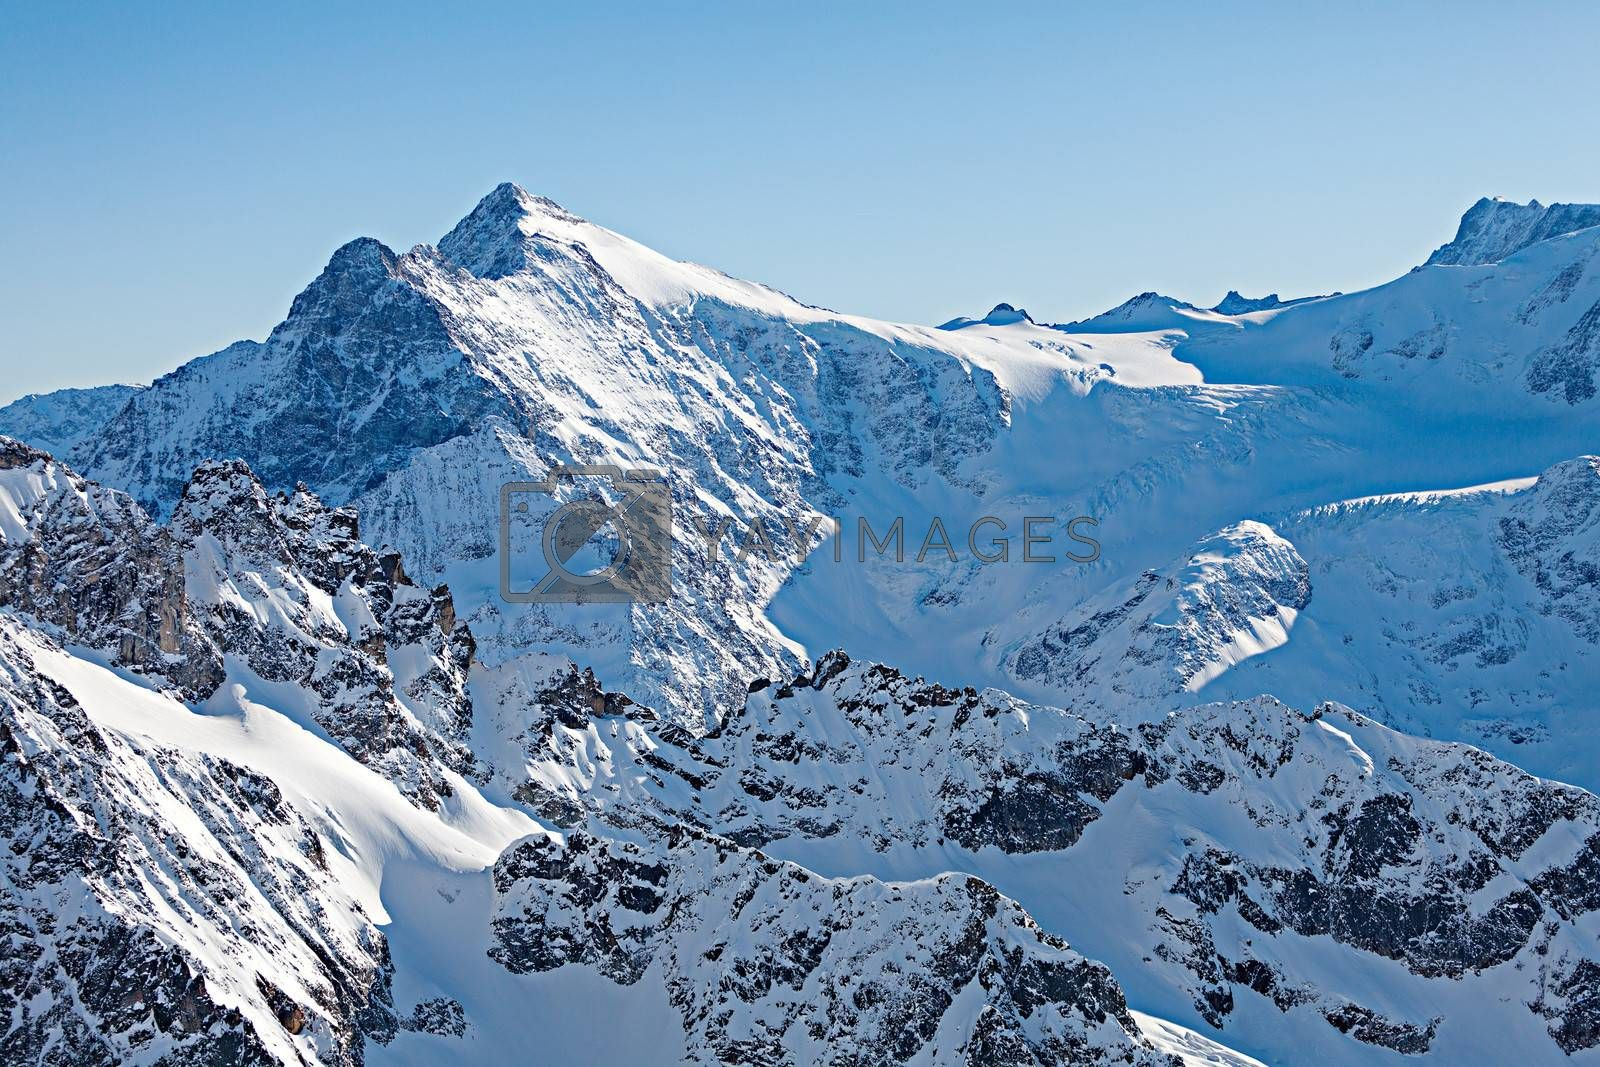 The Alps by ajn